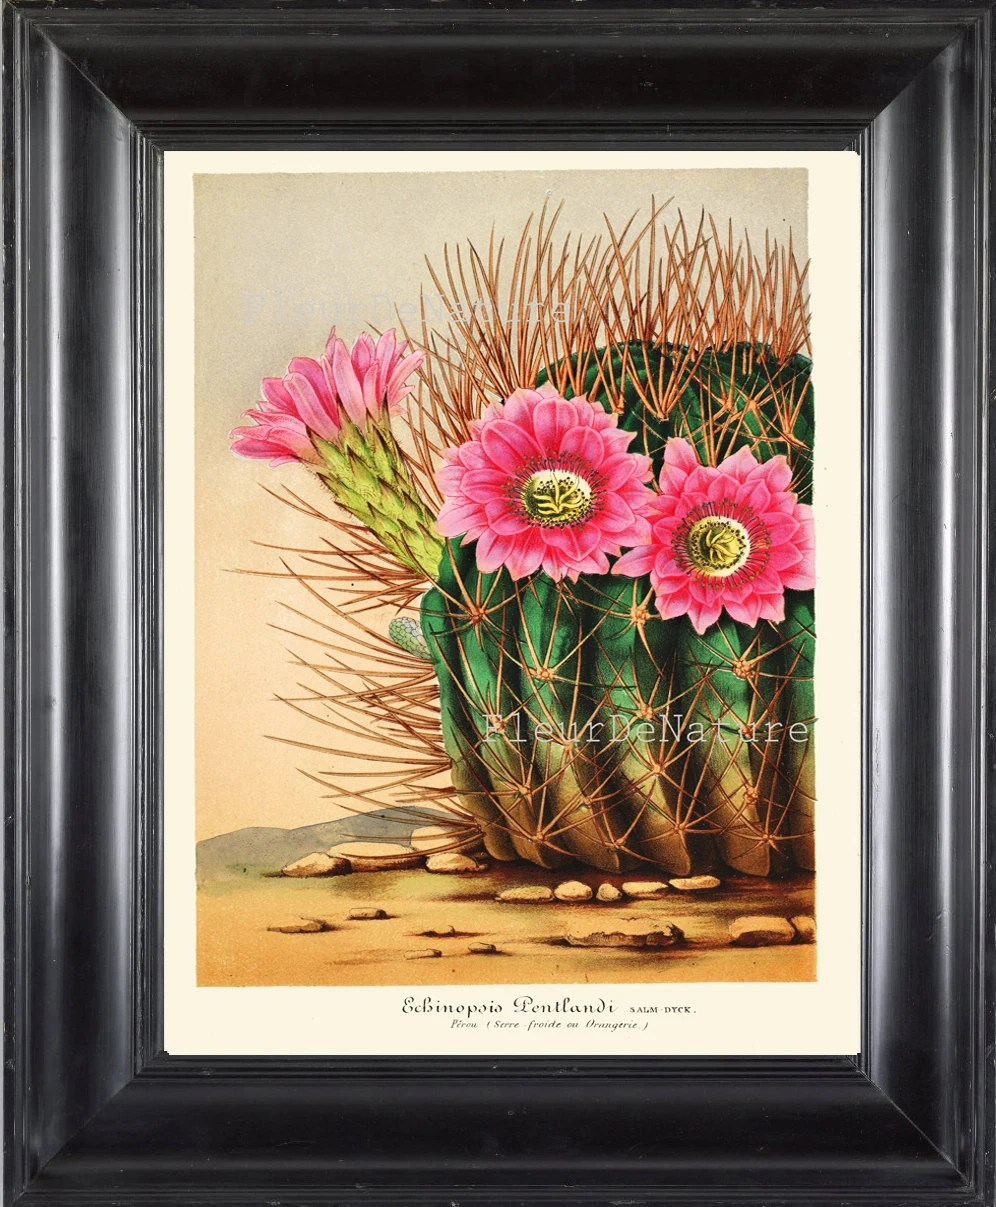 Serre 8x10 Botanical Print Horticole 8x10 Botanical Art Print 217 Beautiful Pink Cactus Flower Tropical Plant Antique Writing Room Decoration To Frame